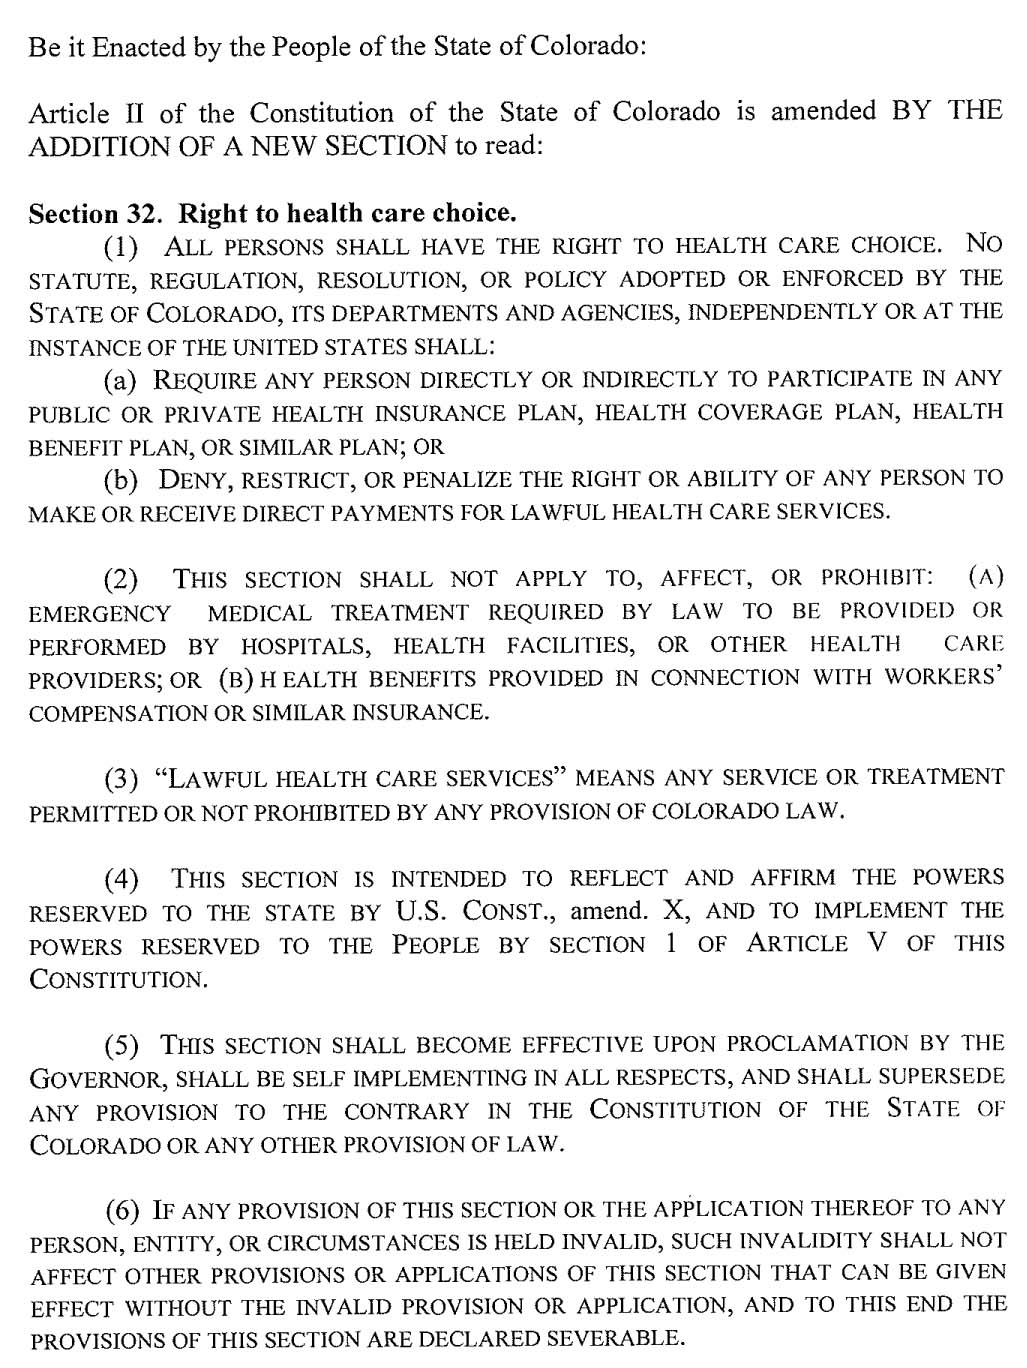 Amendment 63 - Right To Health Care Choice